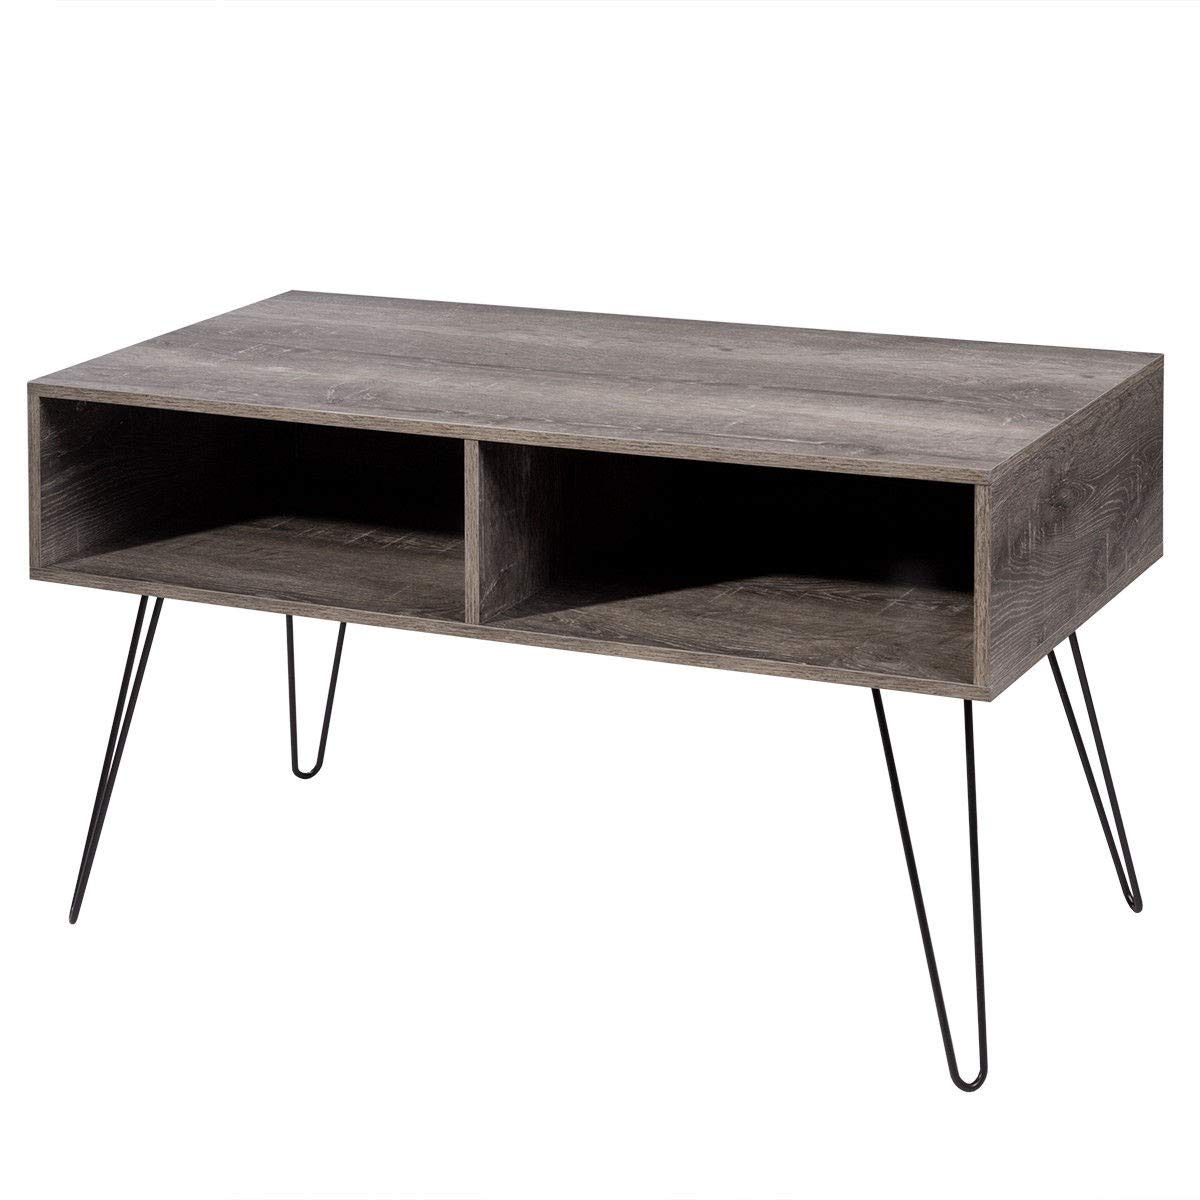 KING77777 Retro and Modern Design Style 42'' TV Stand Wood Media Console with Sturdy Metal Hairpin Legs by KING77777 (Image #1)